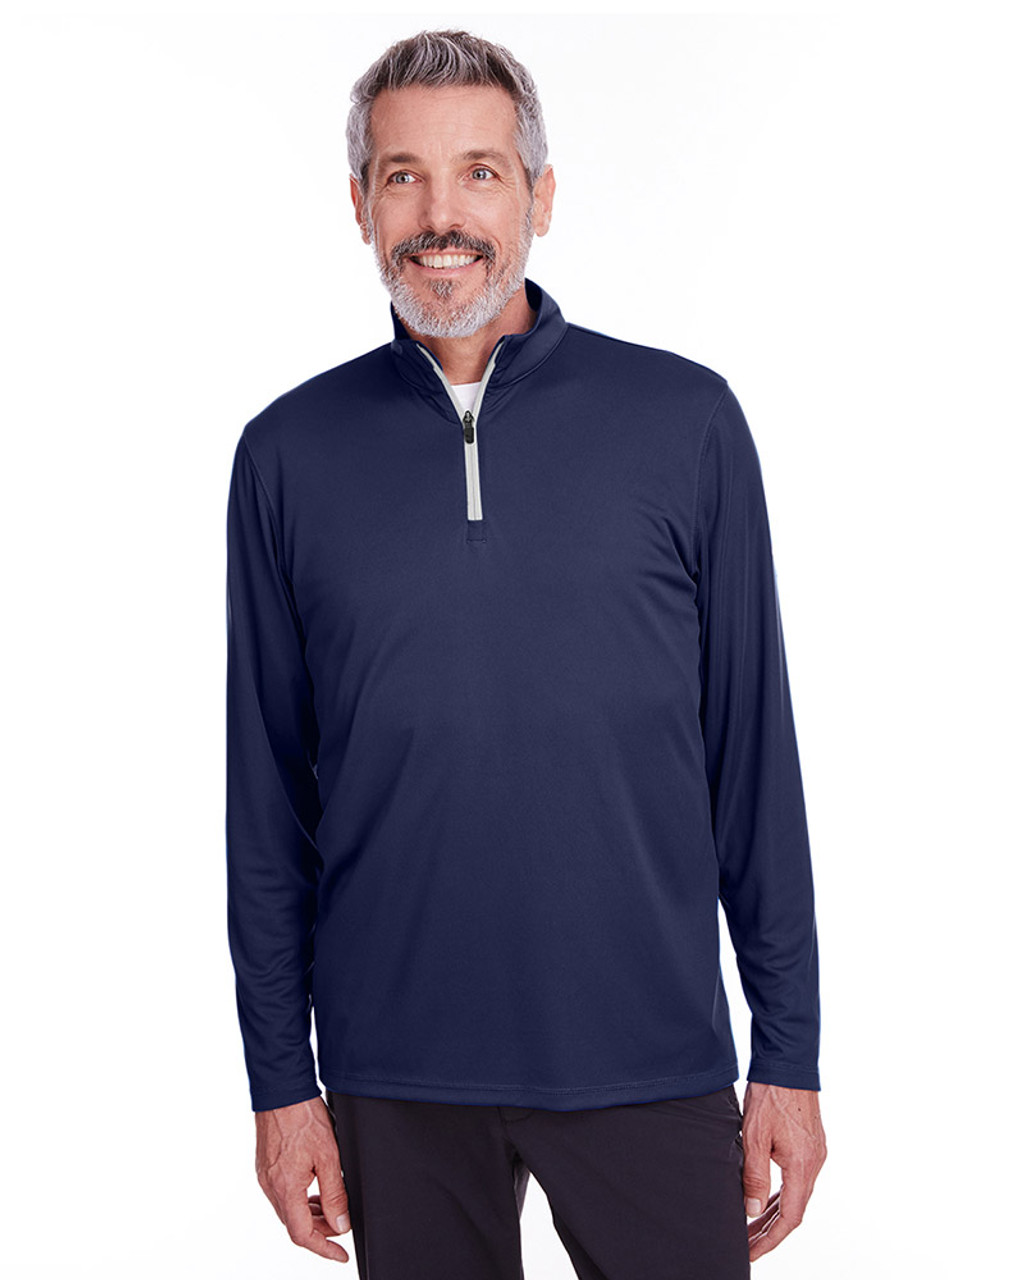 Peacoat - 596807 Puma Golf Men's Icon Quarter-Zip Shirt | Blankclothing.ca